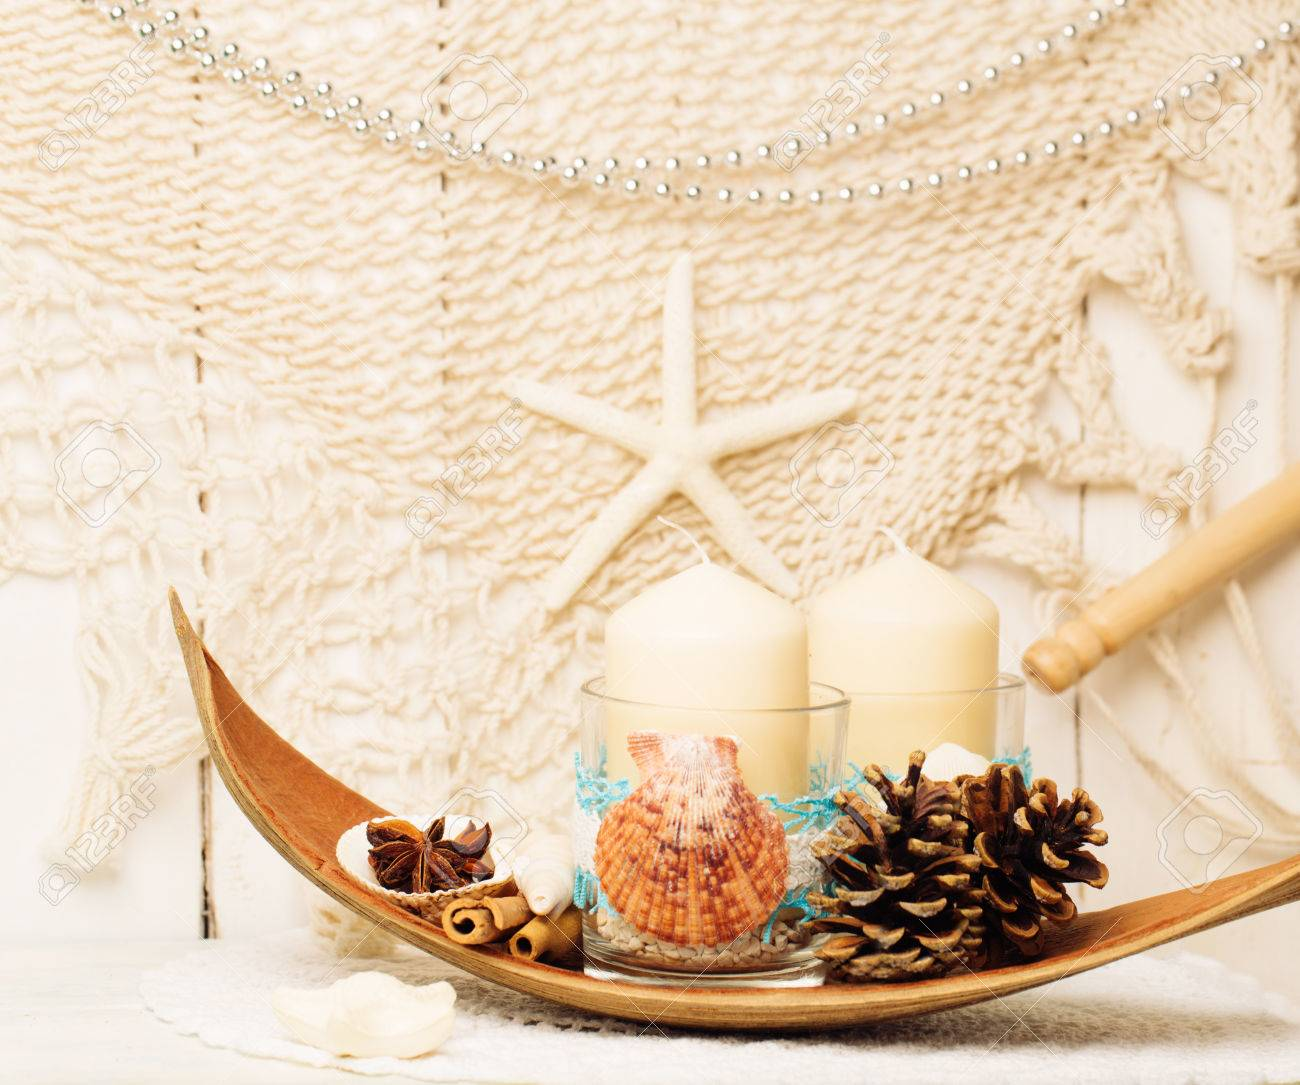 Pine Cone Candles Decoration For Christmas In Marine Style Handmade Candles With